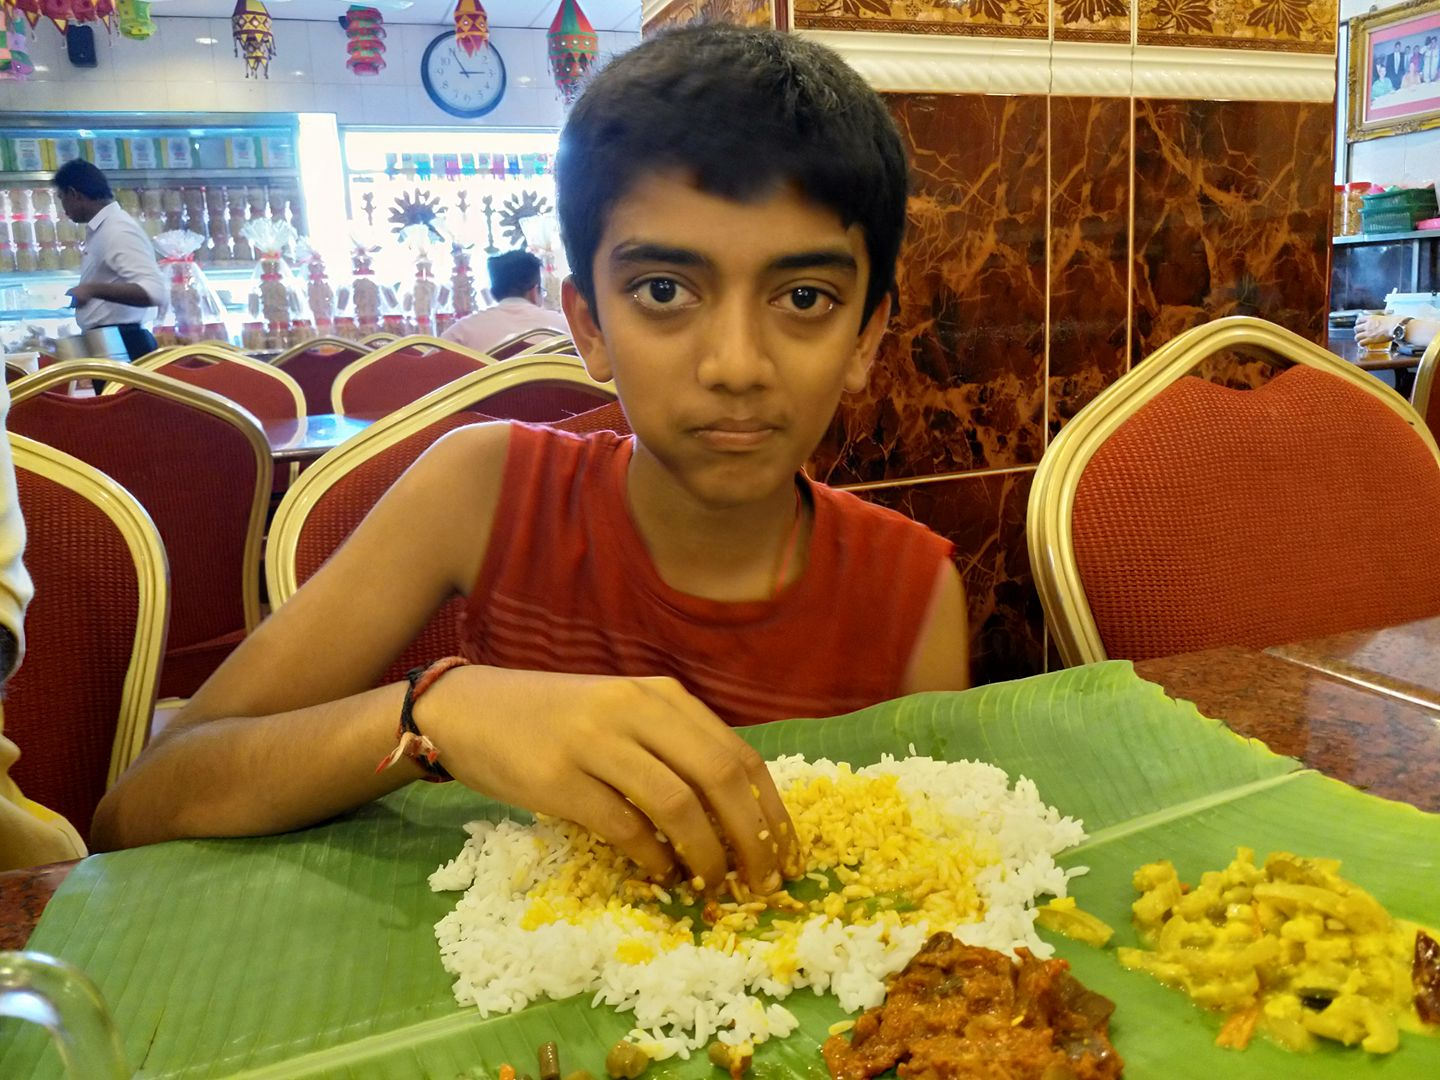 Gukesh eating rice